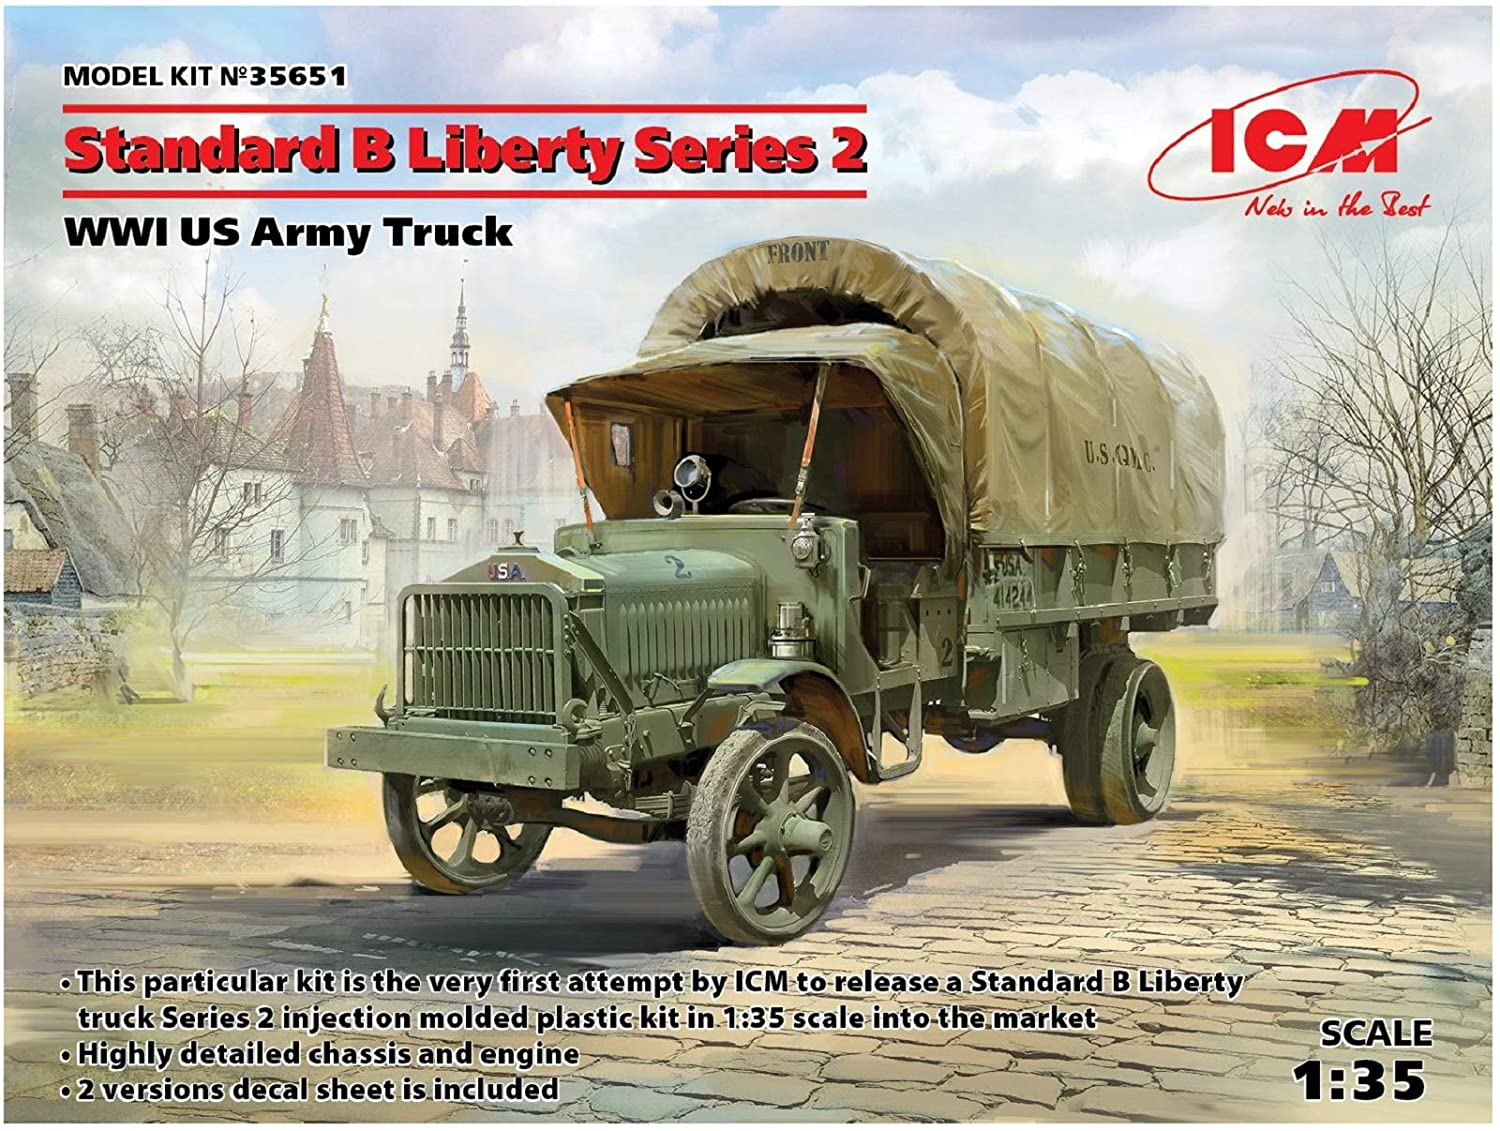 WWI US Army Truck Model Building Kit #35651 ICM 1//35 Scale Standard B Liberty Series 2